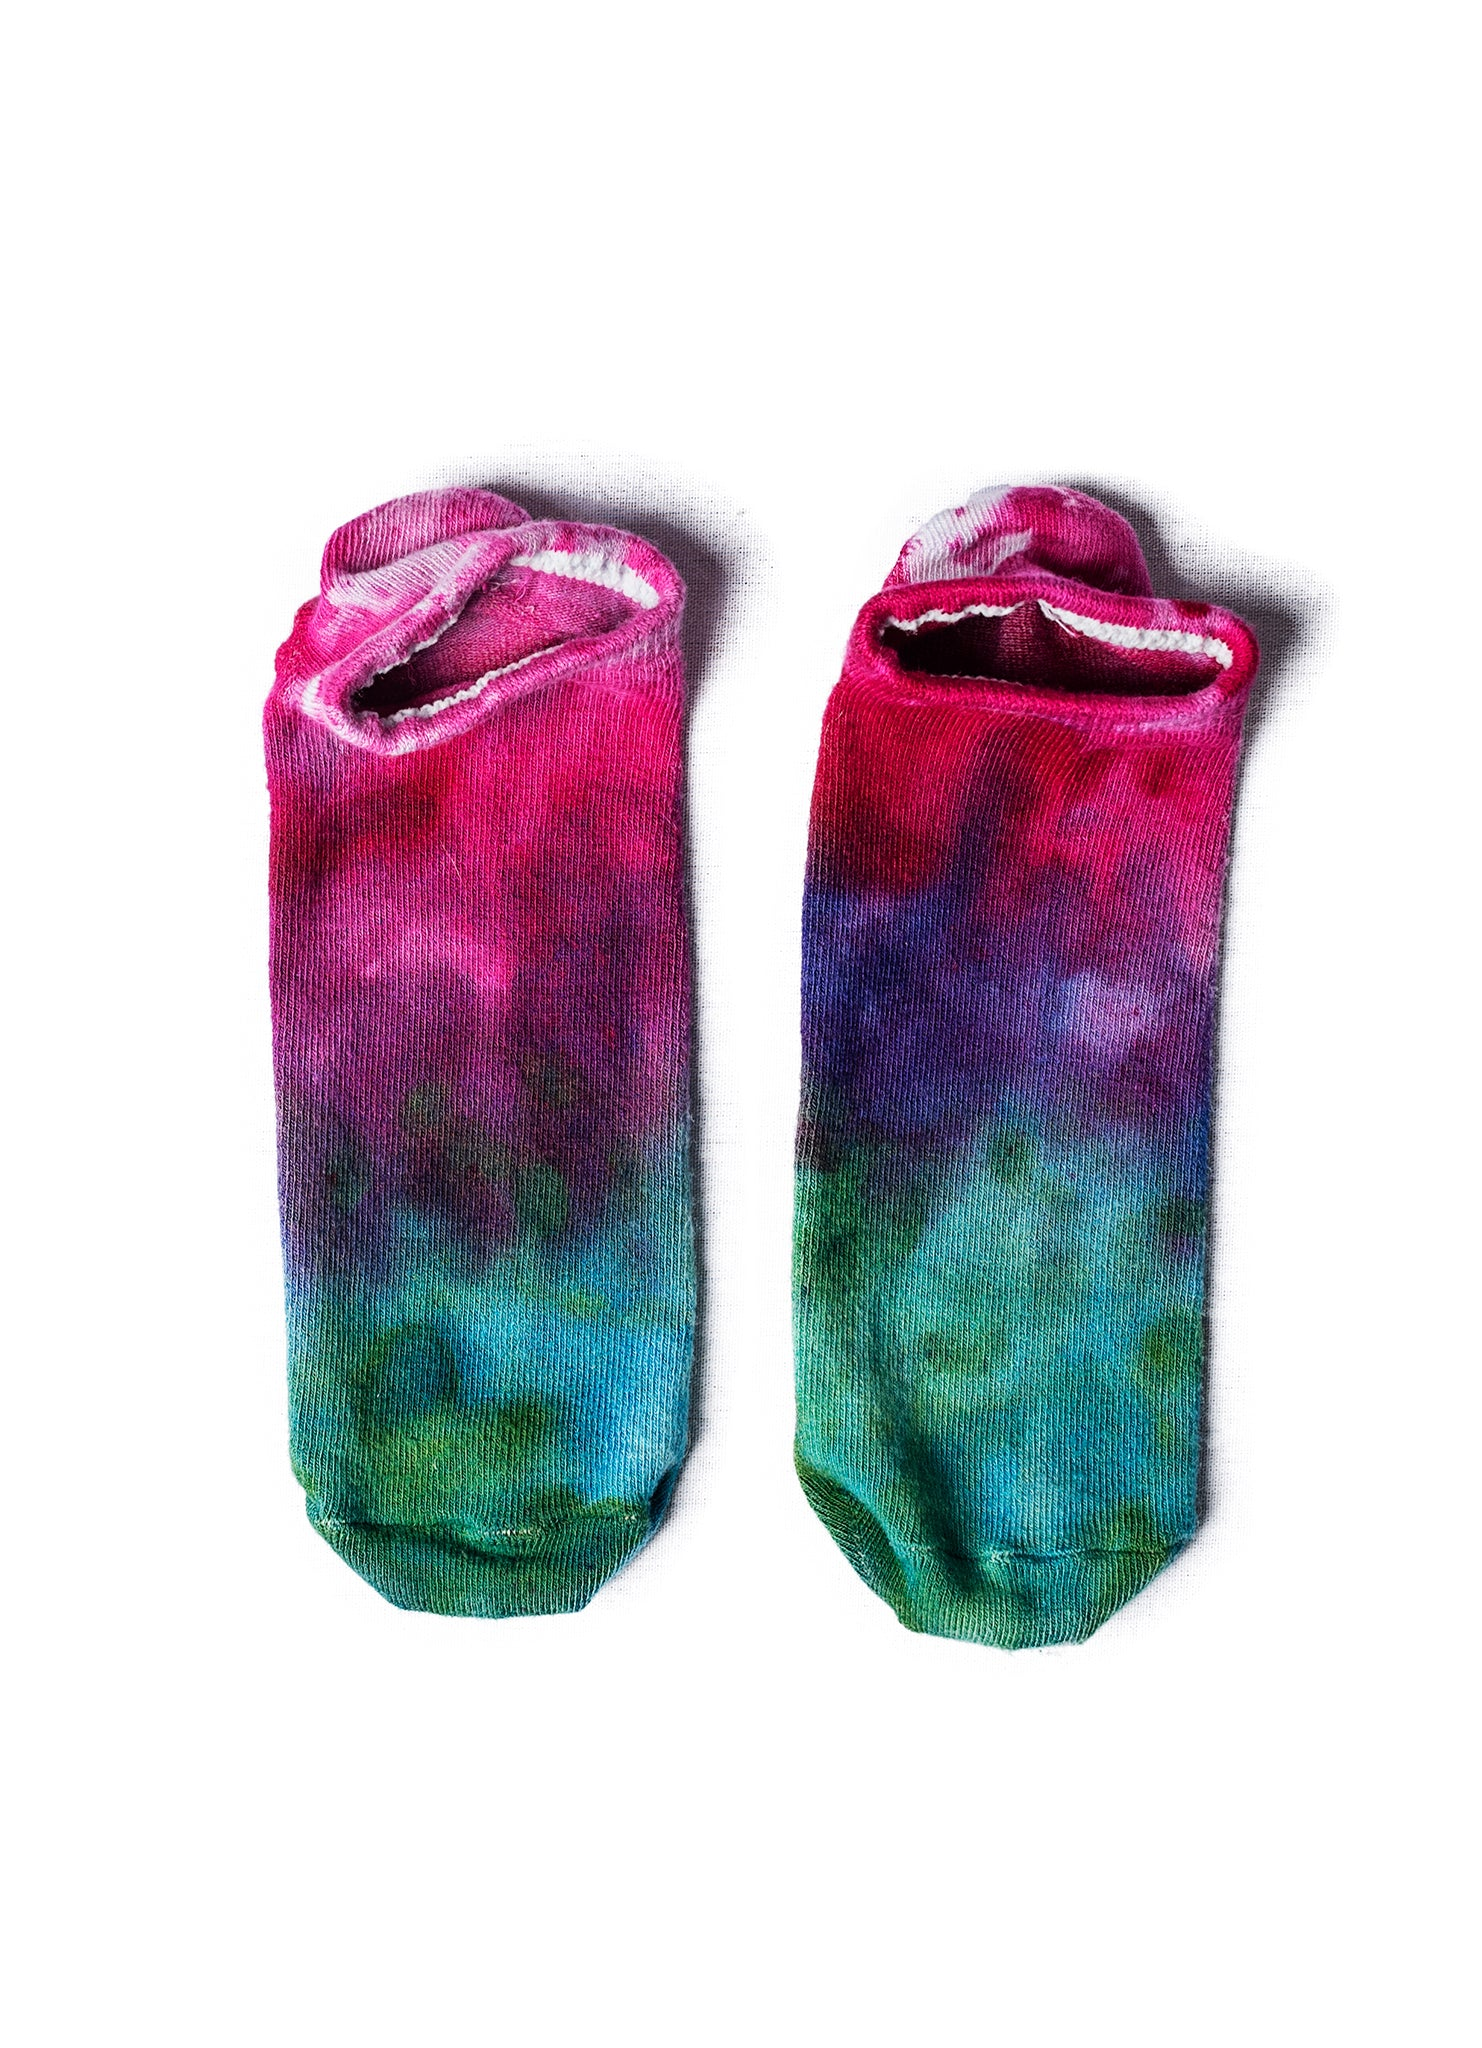 Bamboo Rayon Footies- Peacock Ombre - Footies - Dyetology